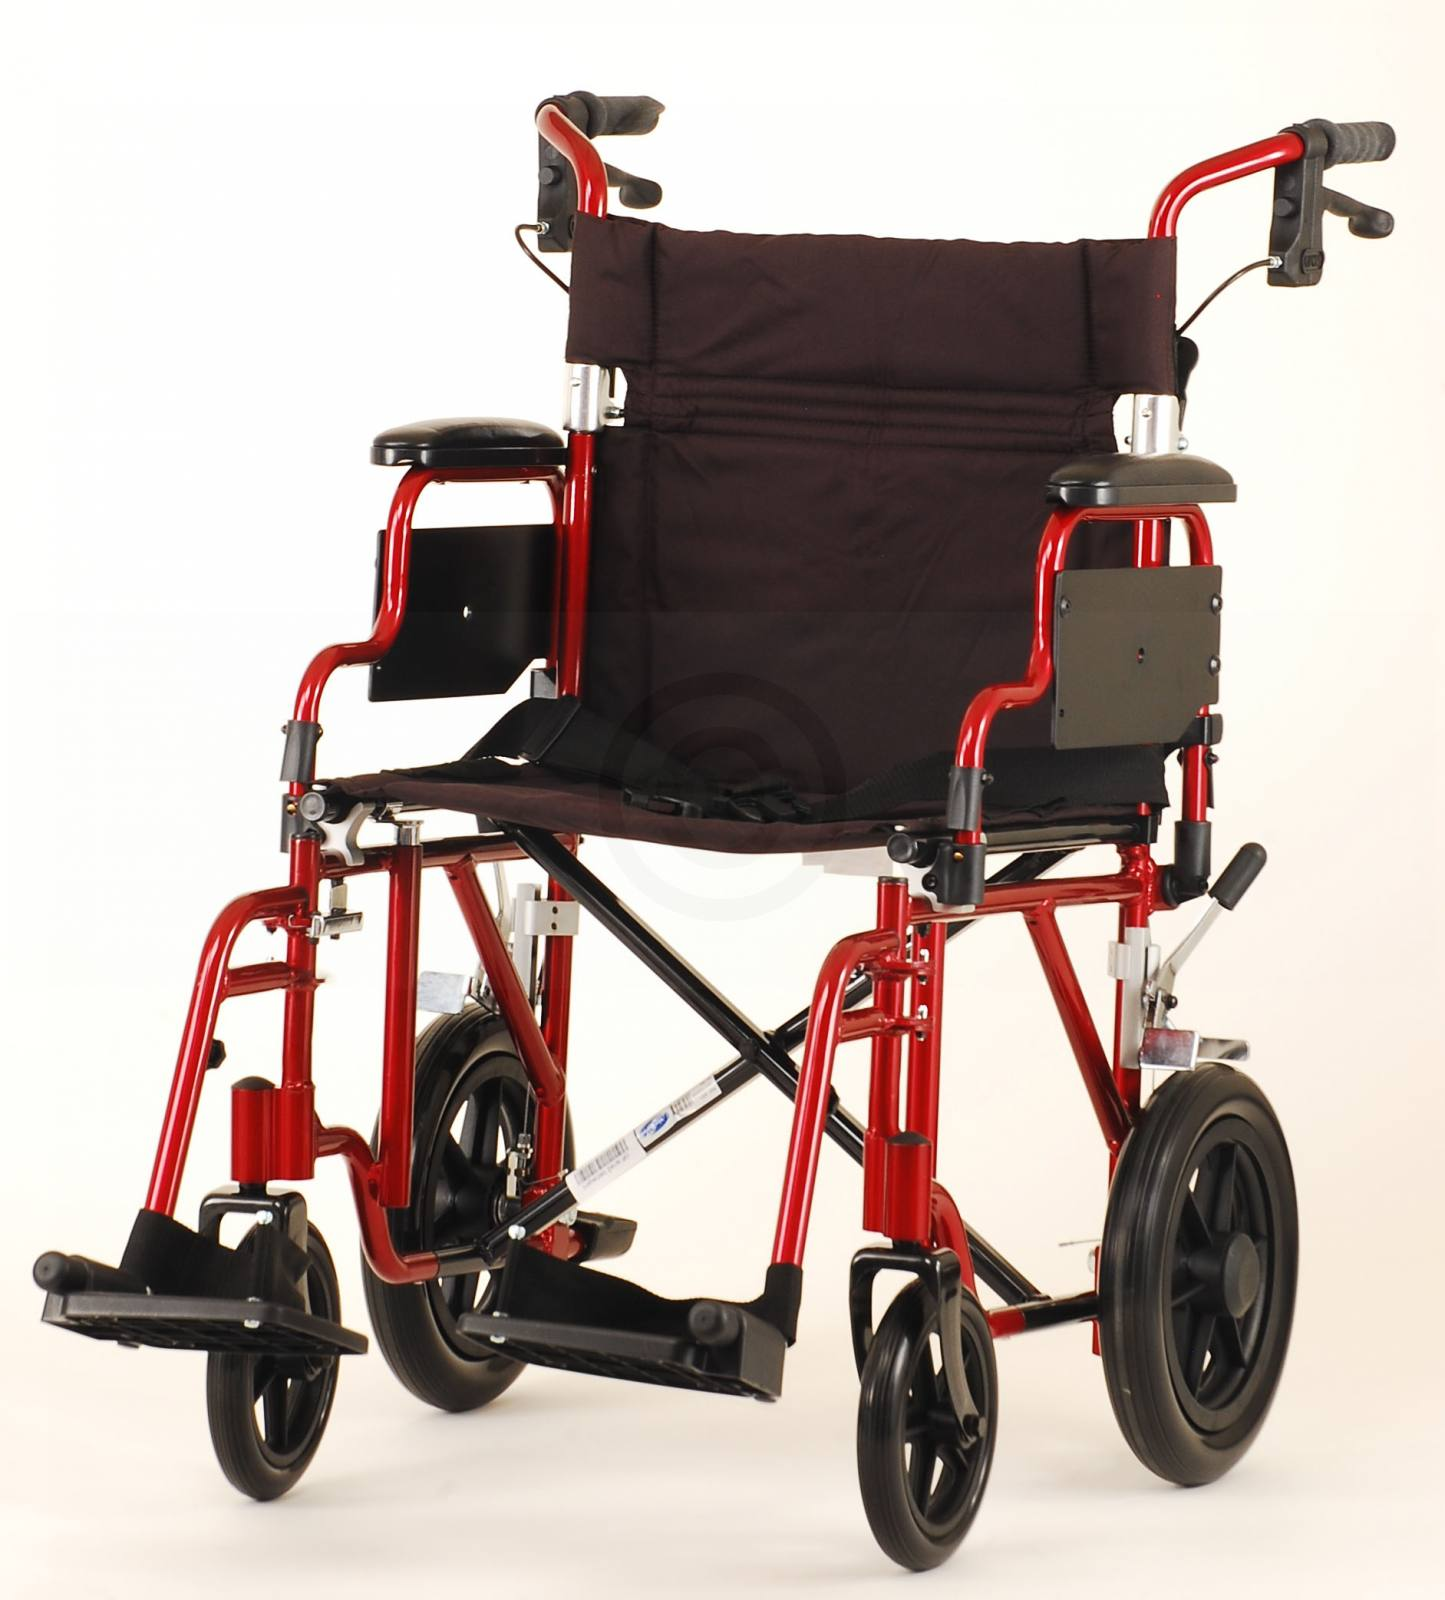 19 INCH TRANSPORT CHAIR WITH 12  REAR WHEELS for sale | Headquarters (888) 848-4077  sc 1 st  James Medical & 19 INCH TRANSPORT CHAIR WITH 12